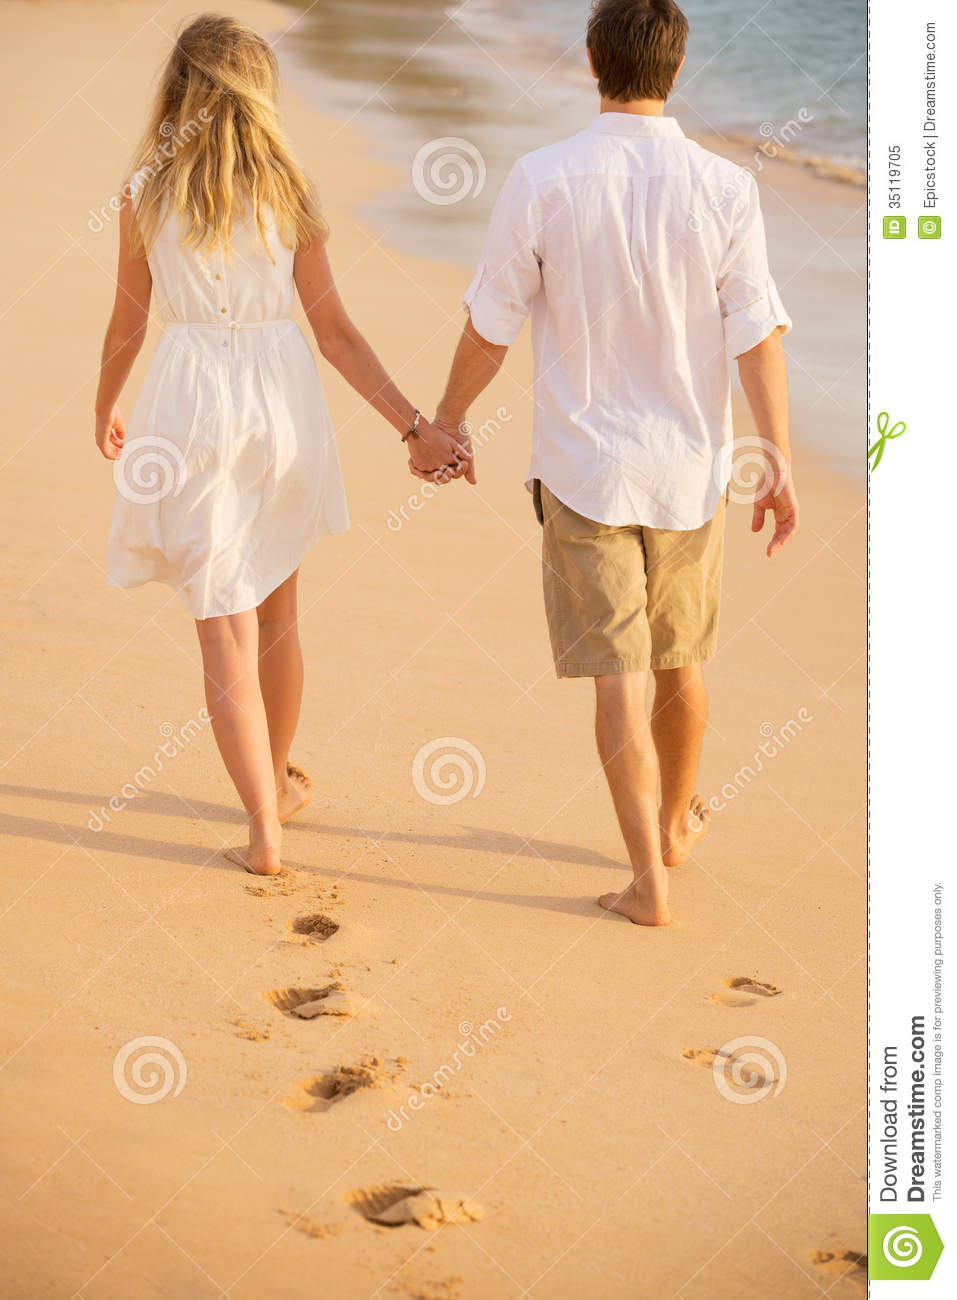 Romantic Couple Holding Hands Walking On Beach At Sunset Royalty Free ...